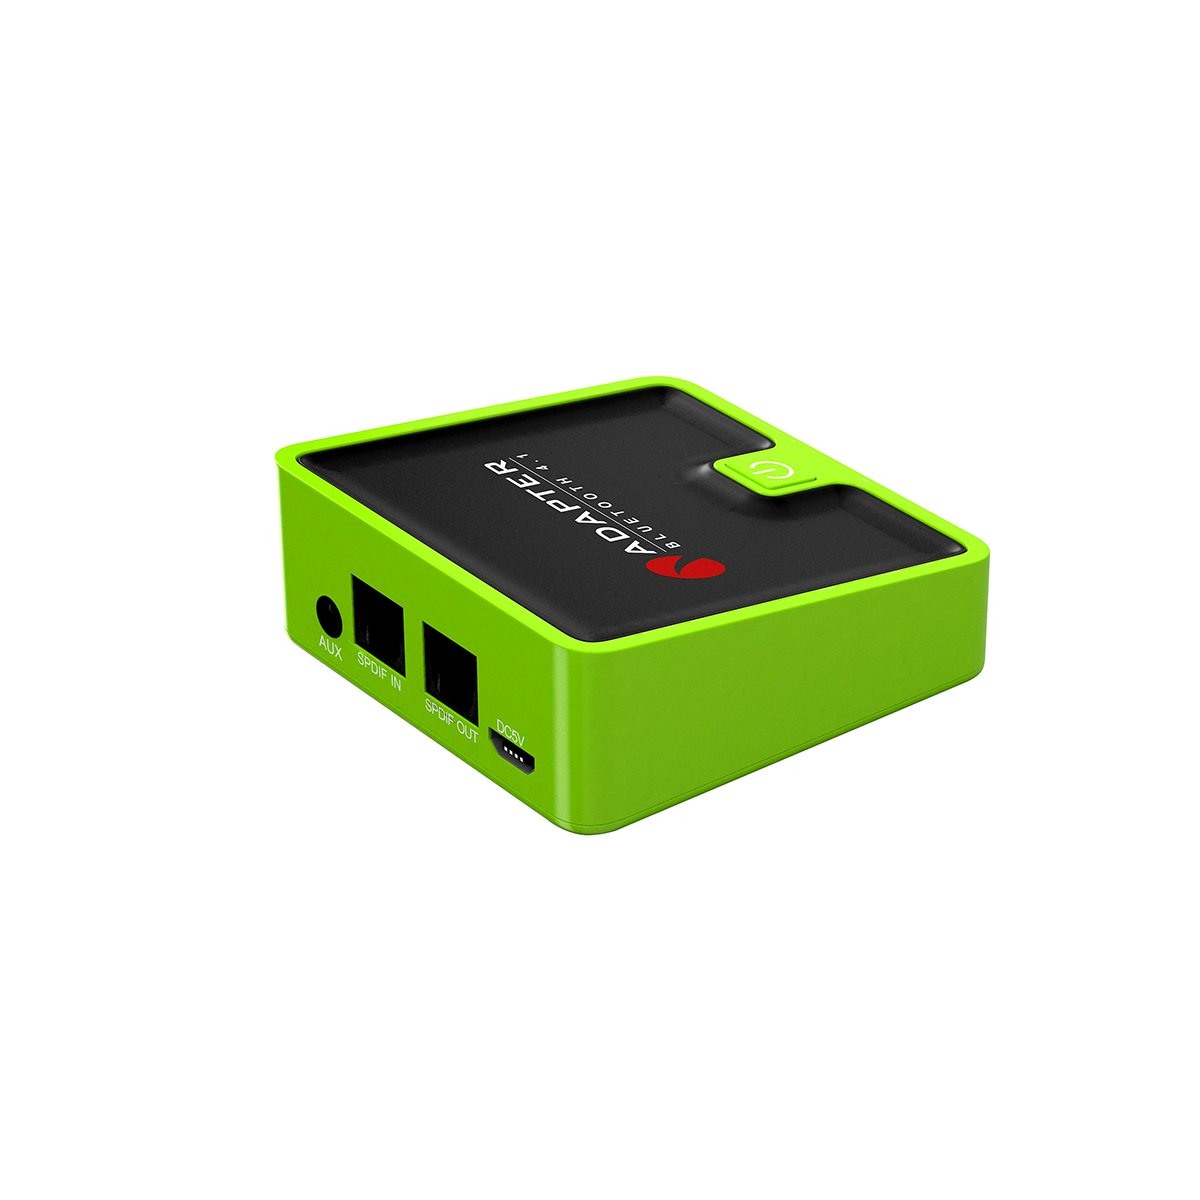 Vacio TI-039 Bluetooth 4.1 2in1 Transmitter Receiver Digital Optical Wireless Audio Adapter Support APT-X aptx / Wireless A2DP Audio Adapter with SPDIF & Aux 3.5mm -Green by Vacio (Image #4)